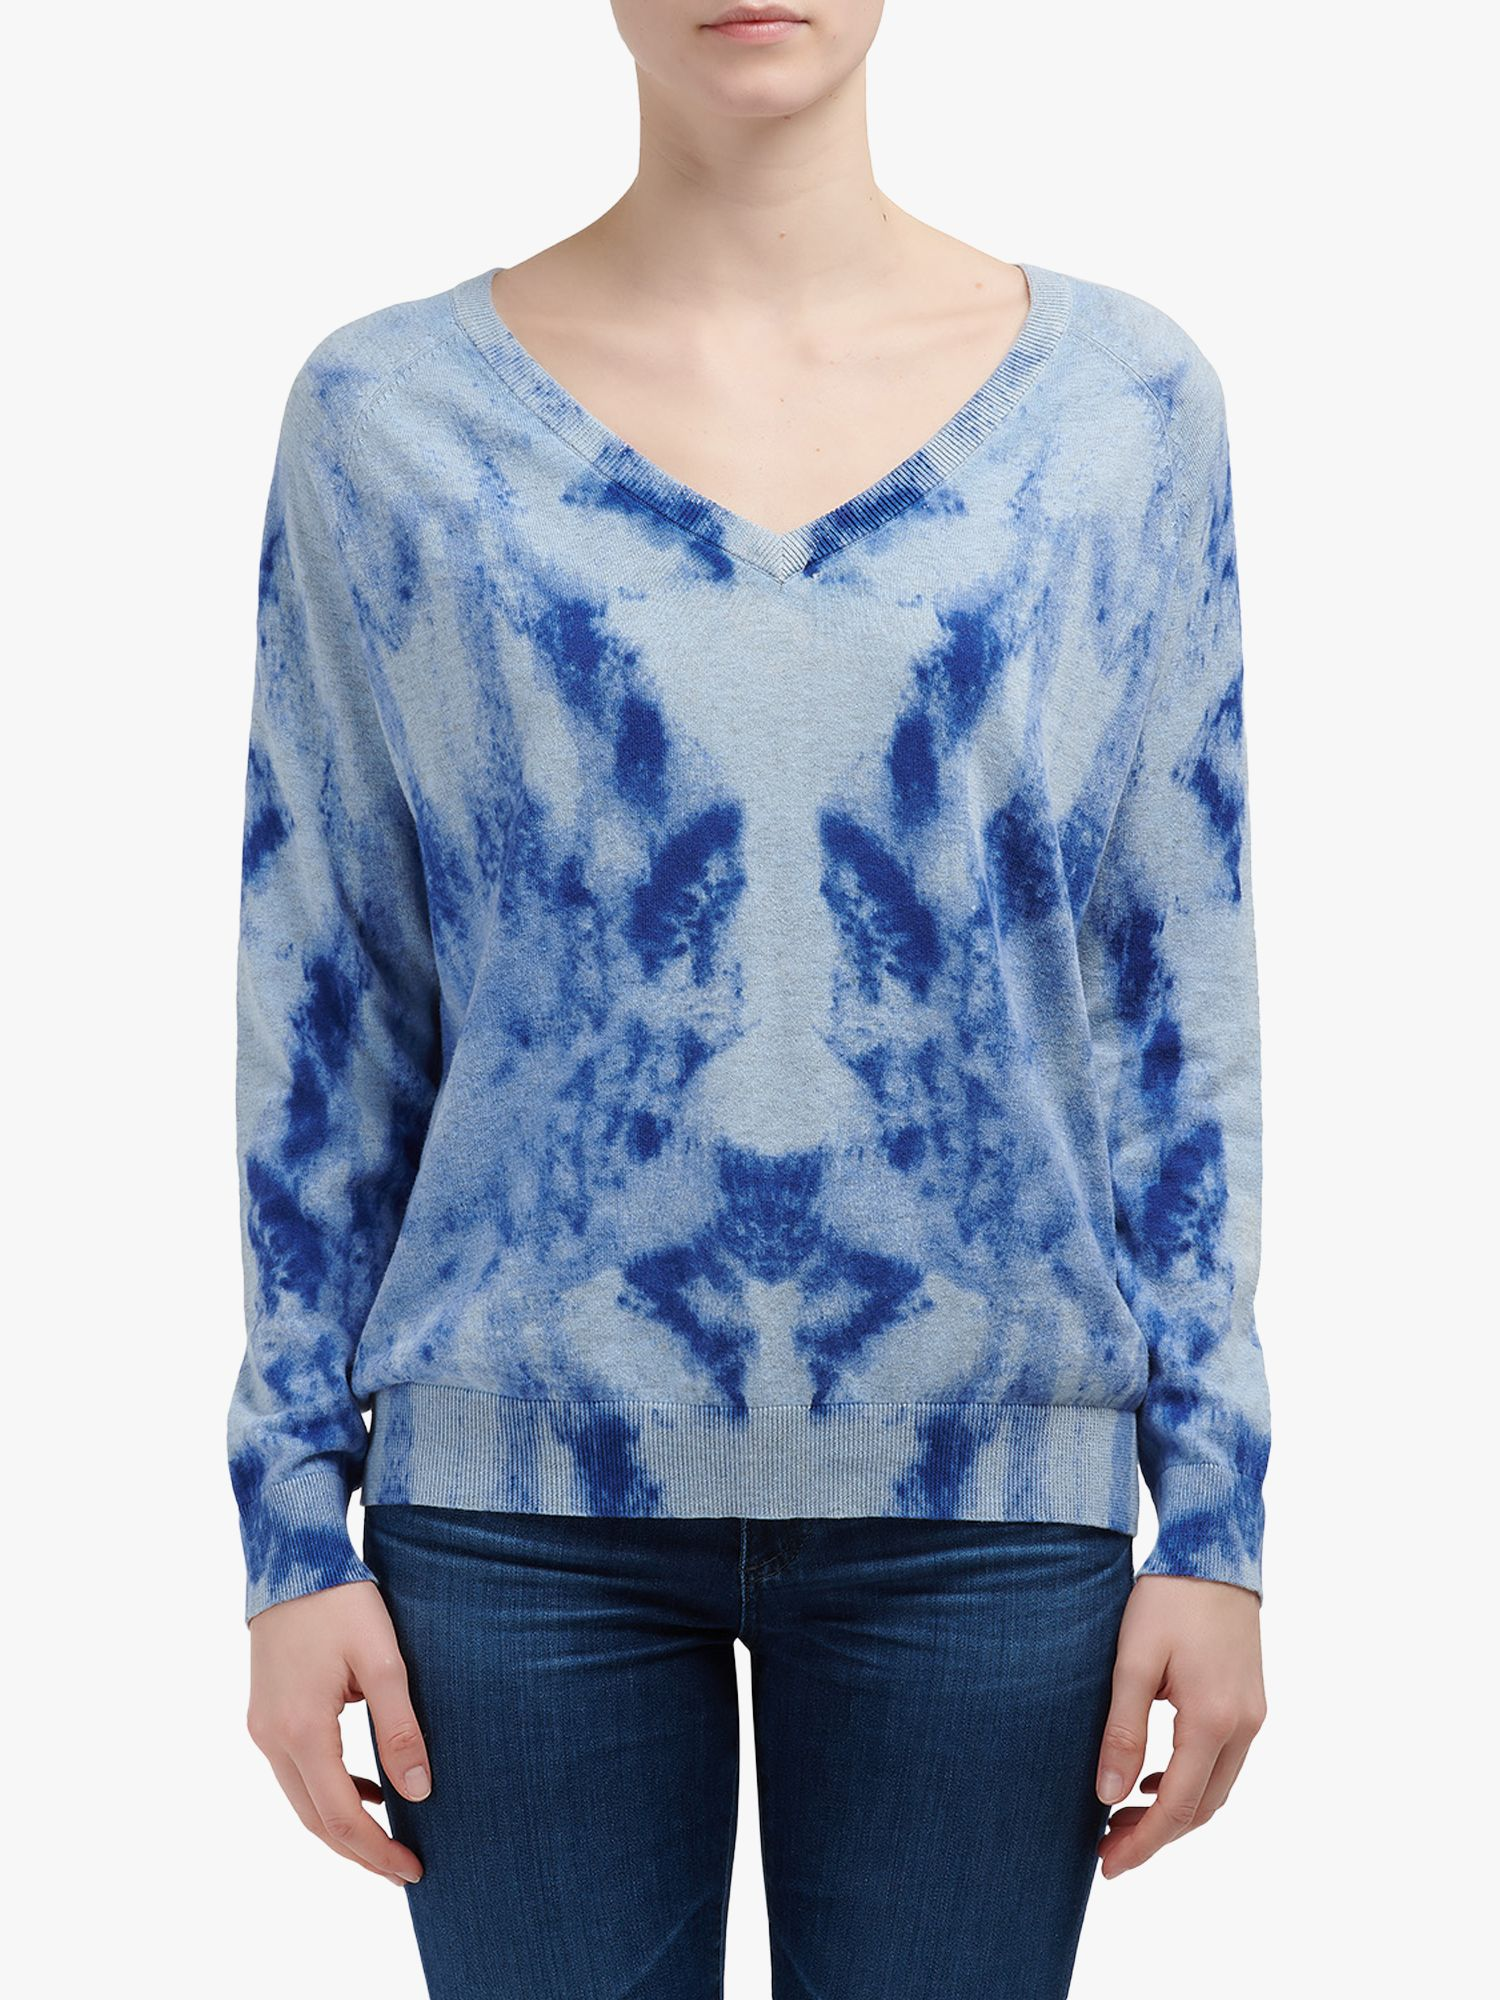 Jeff JEFF Cloud Tie Dye Jumper, Saphir